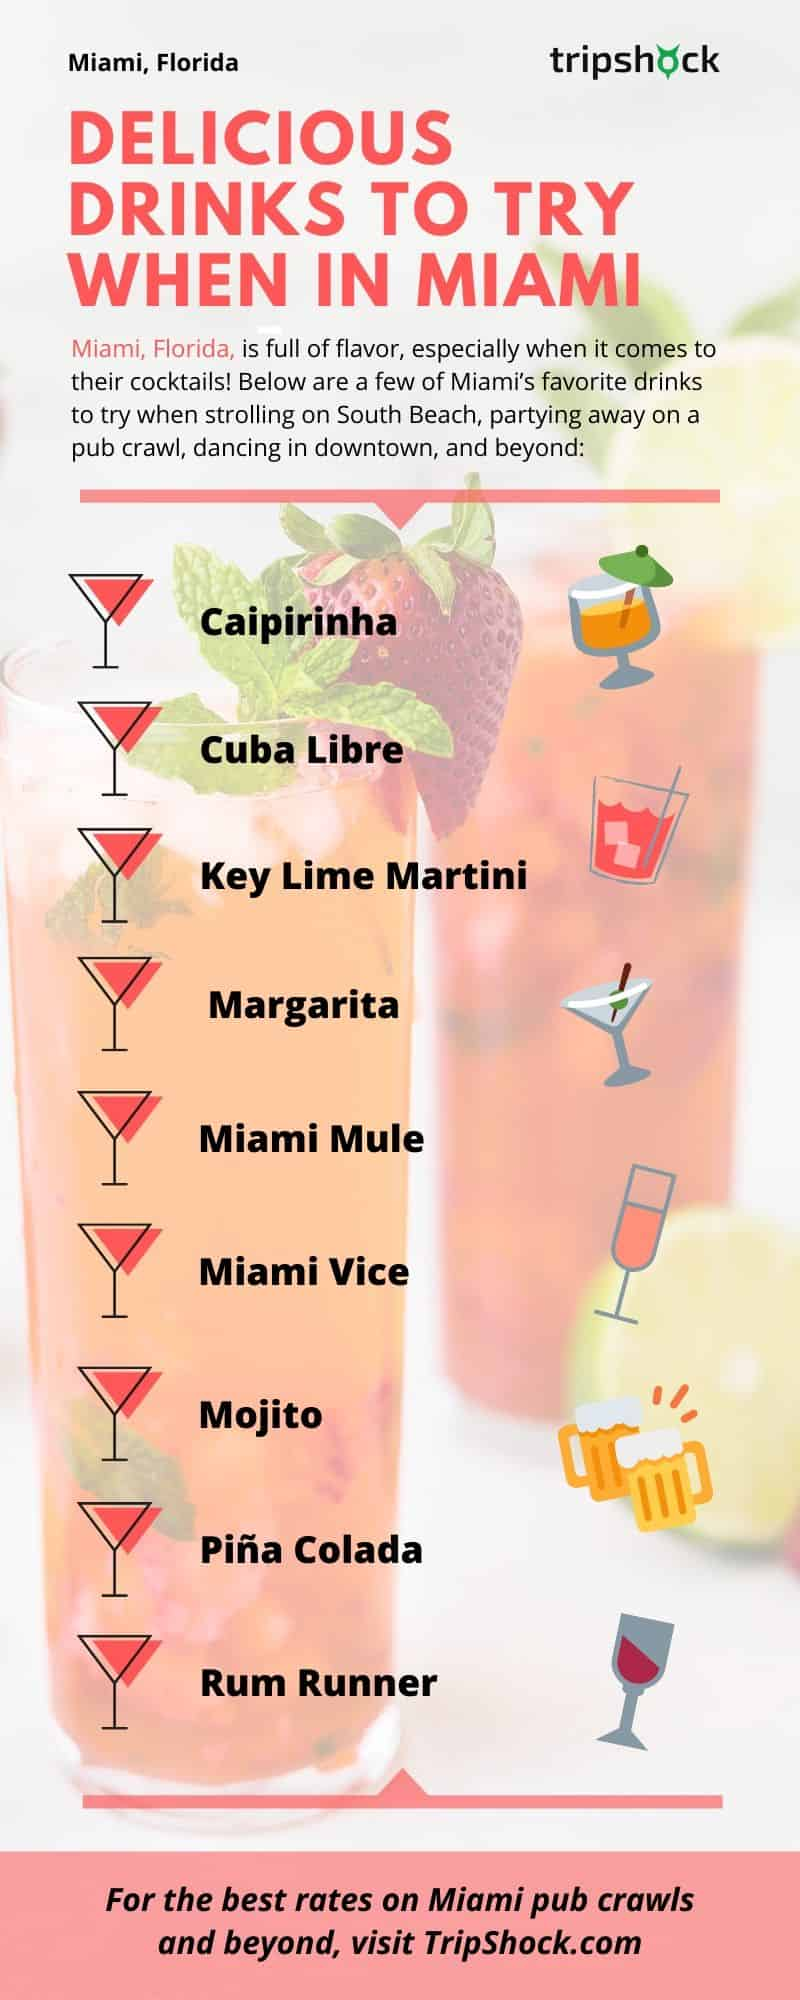 Delicious Drinks to Try When in Miami